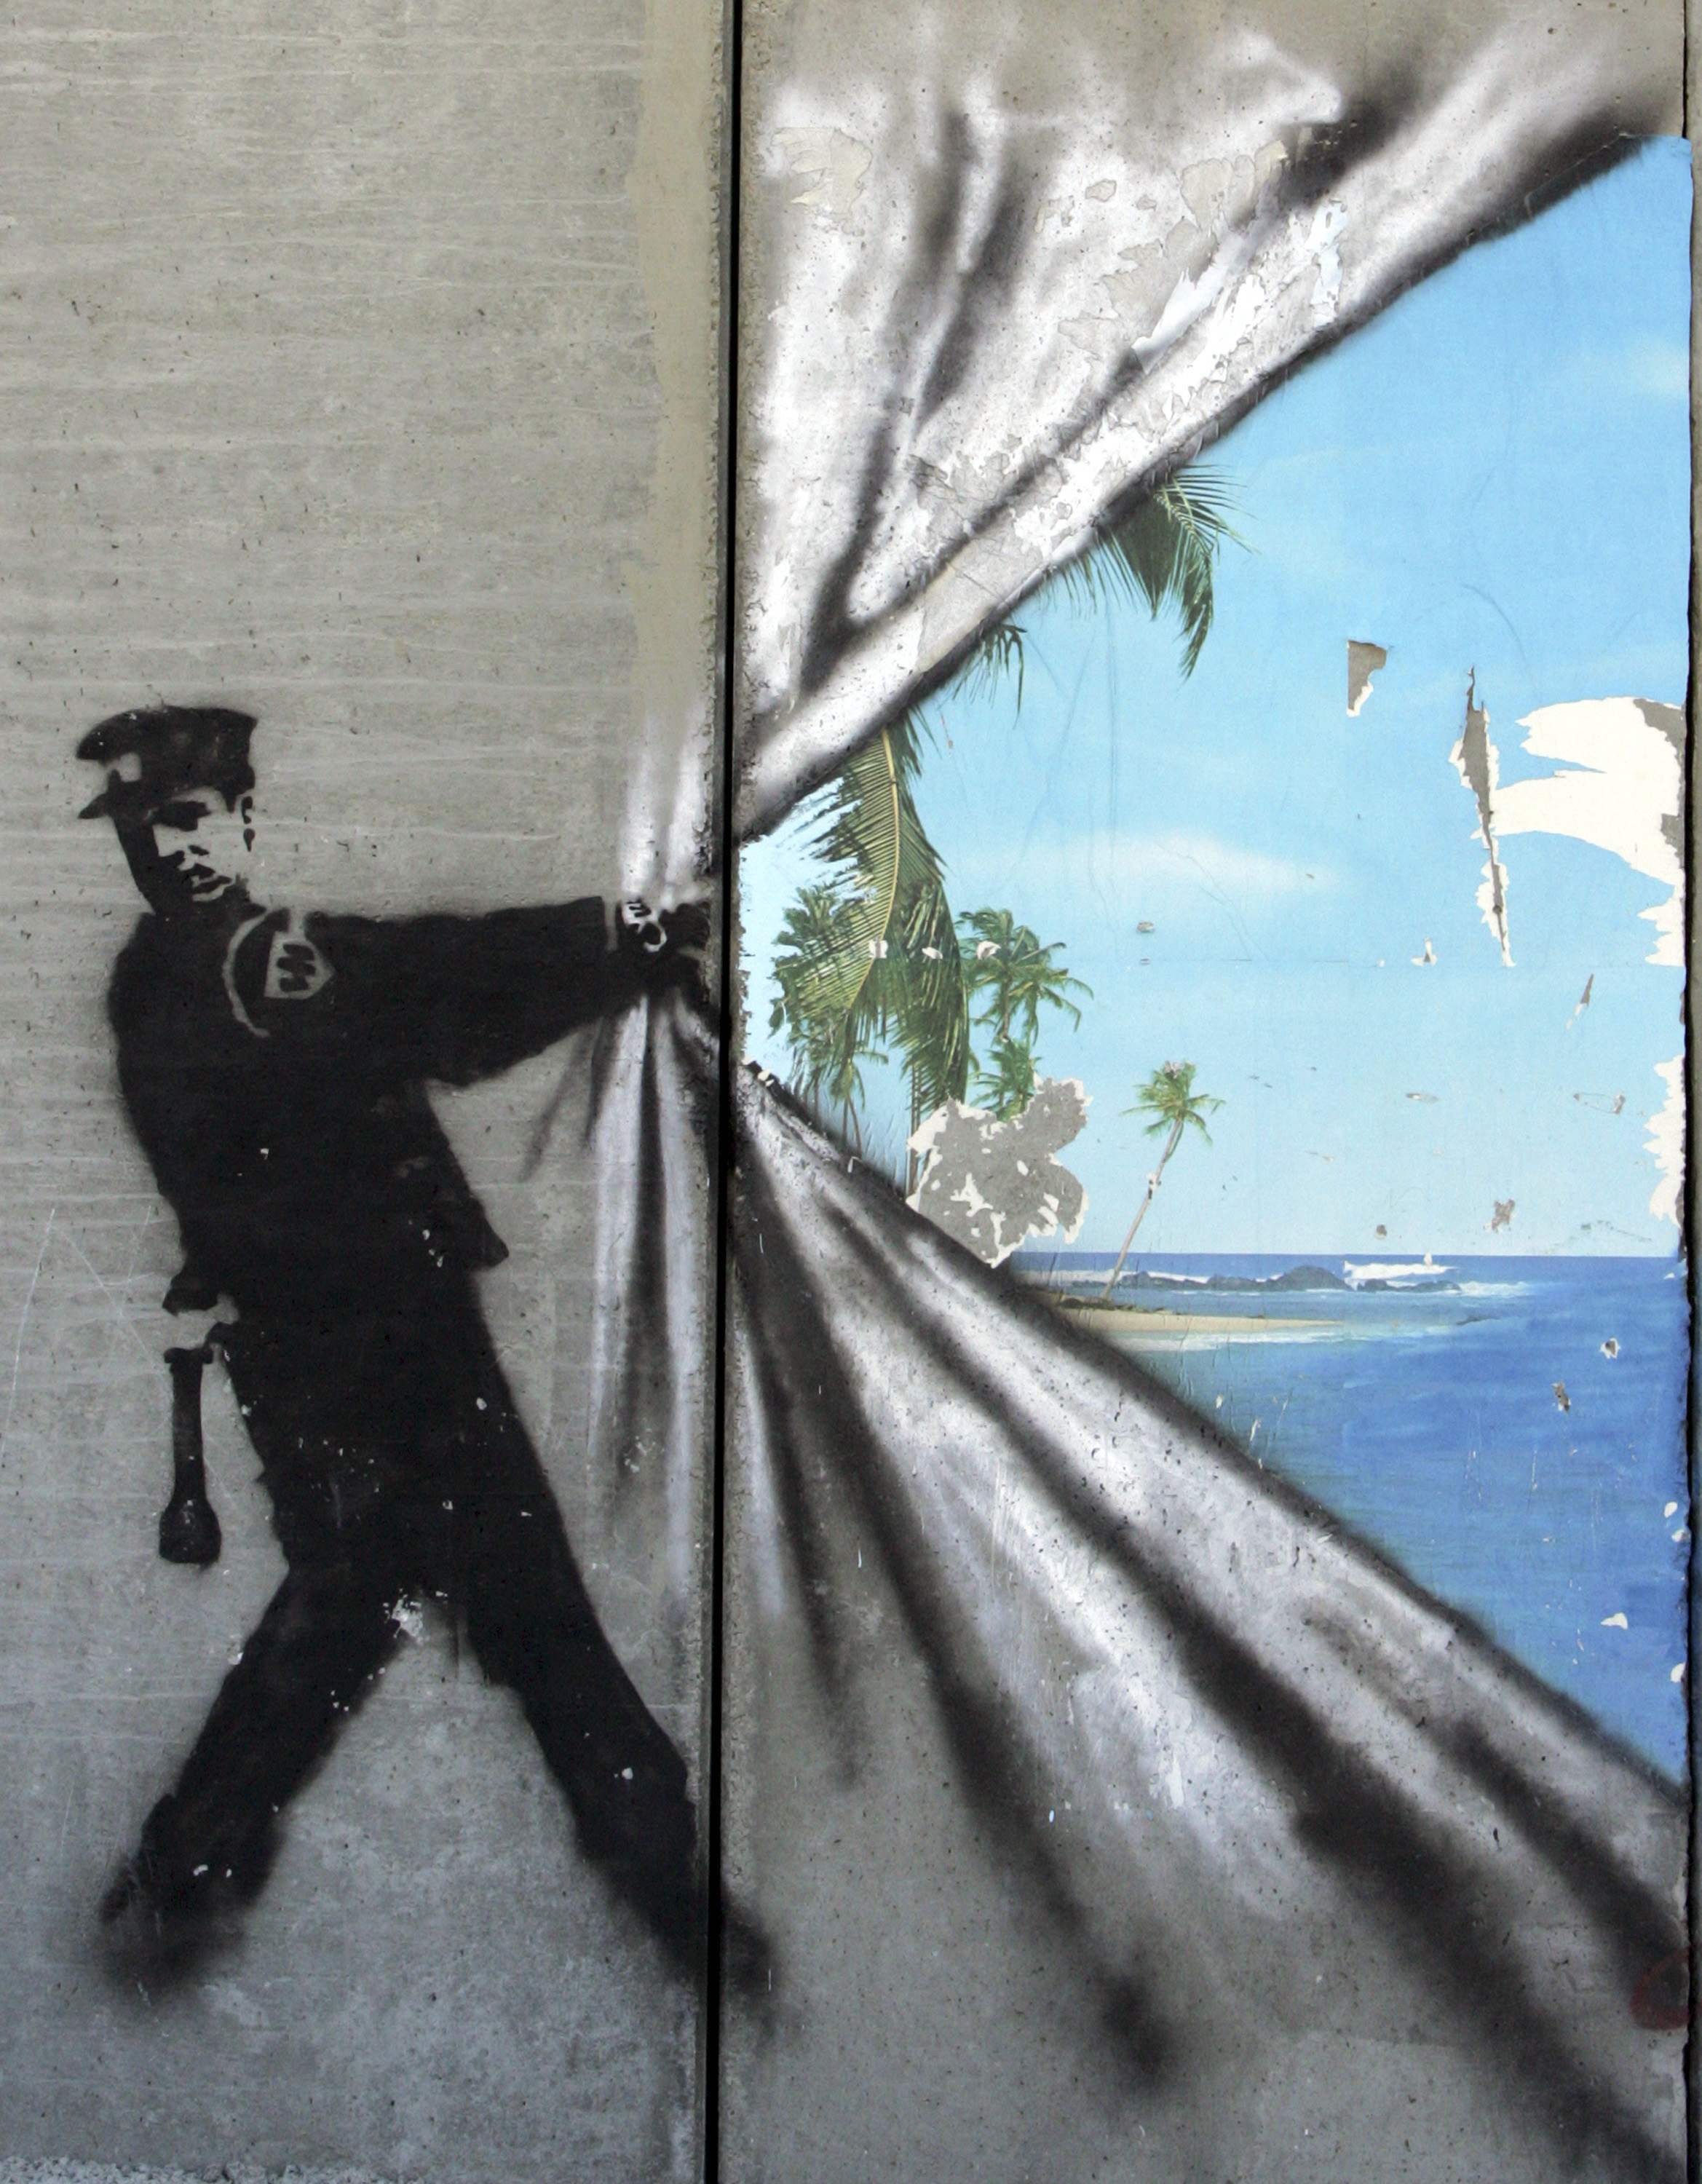 Banksy grafitti enlivens a concrete wall; 'His' works frequently feature or lampoon authoritarian figures.